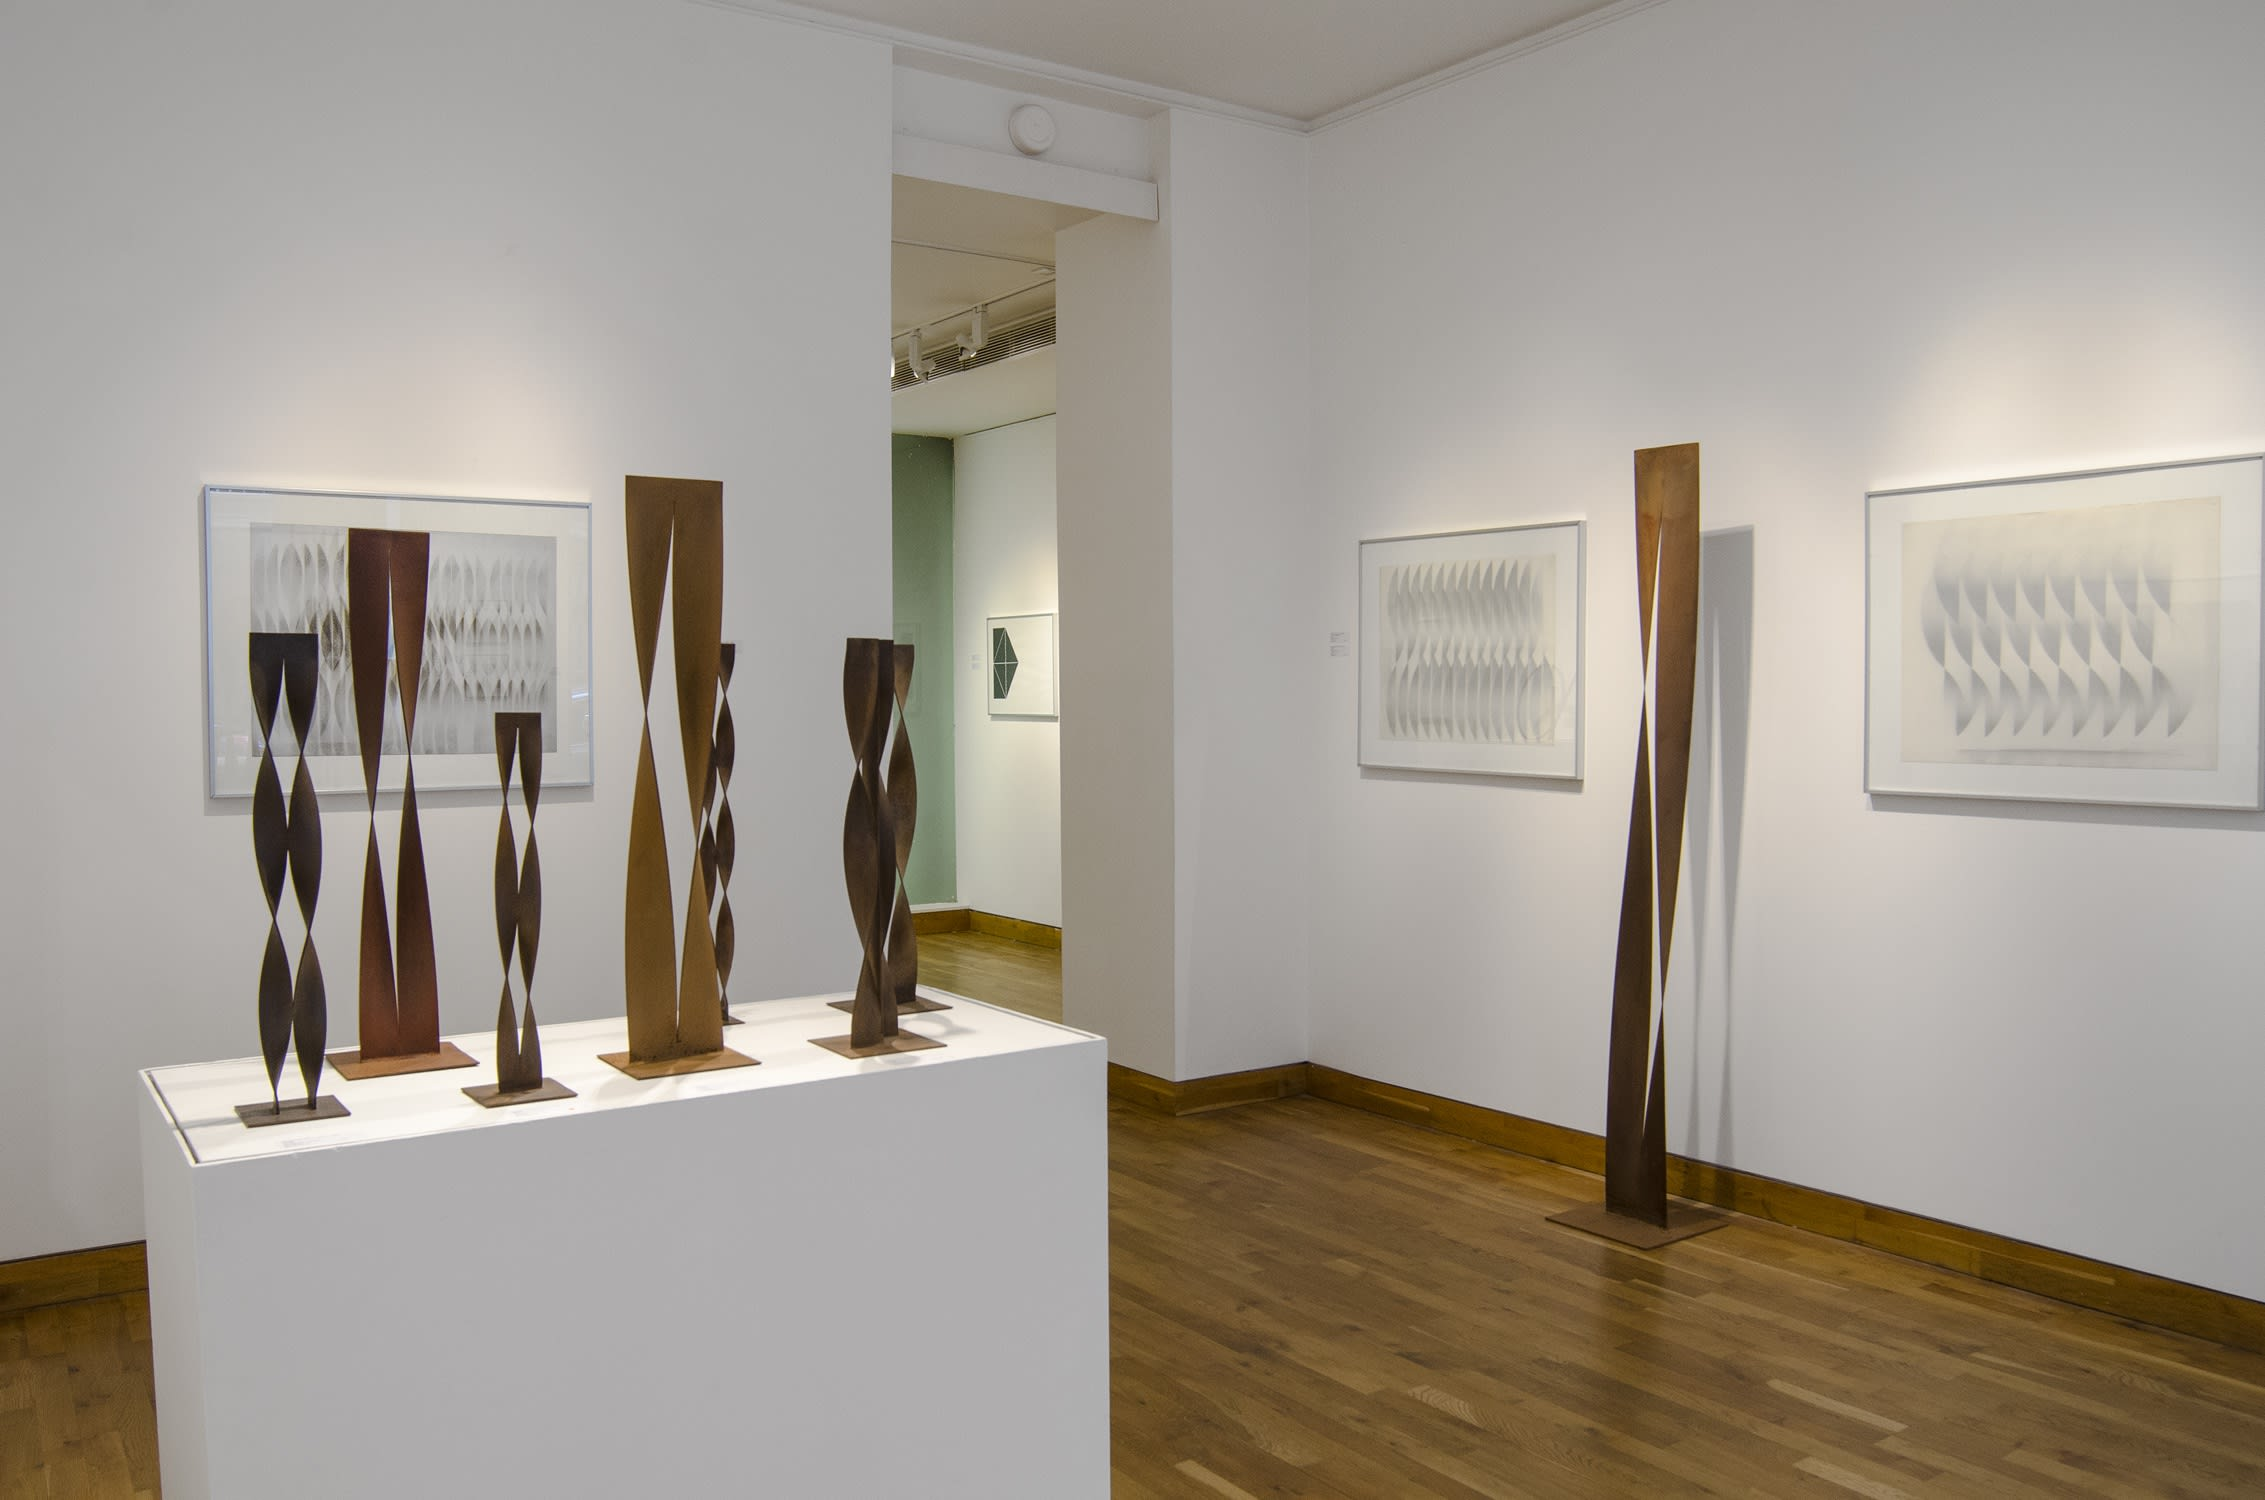 "<span class=""link fancybox-details-link""><a href=""/exhibitions/64/works/image_standalone130/"">View Detail Page</a></span><p>WALTER LEBLANC 